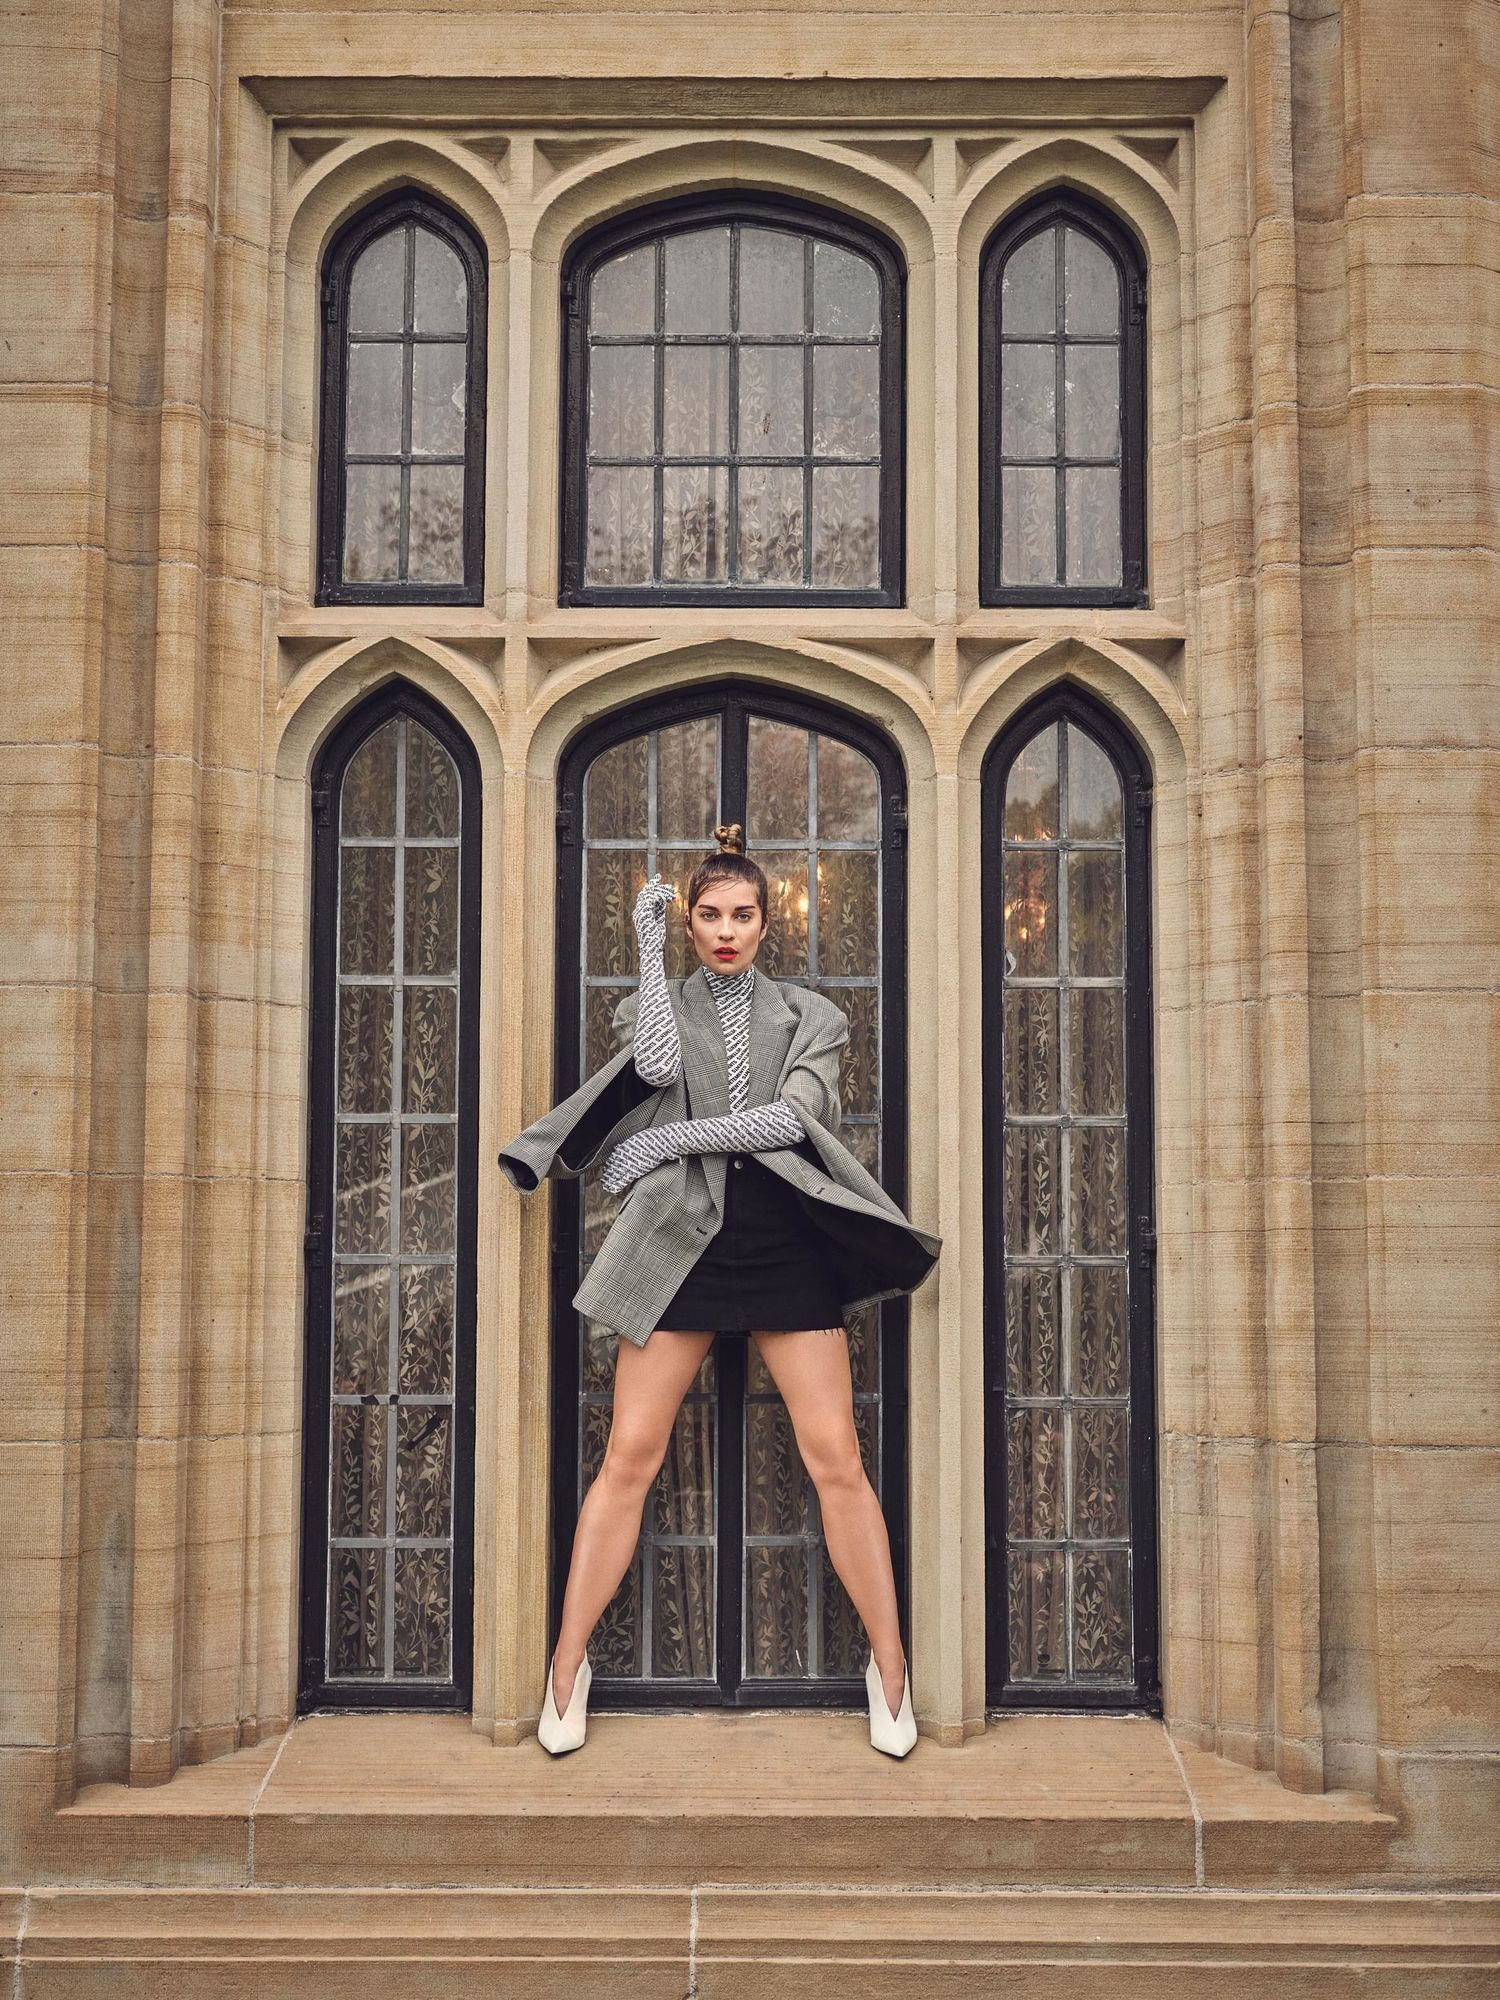 Annie Murphy standing in front of ornate window in a short black skirt.